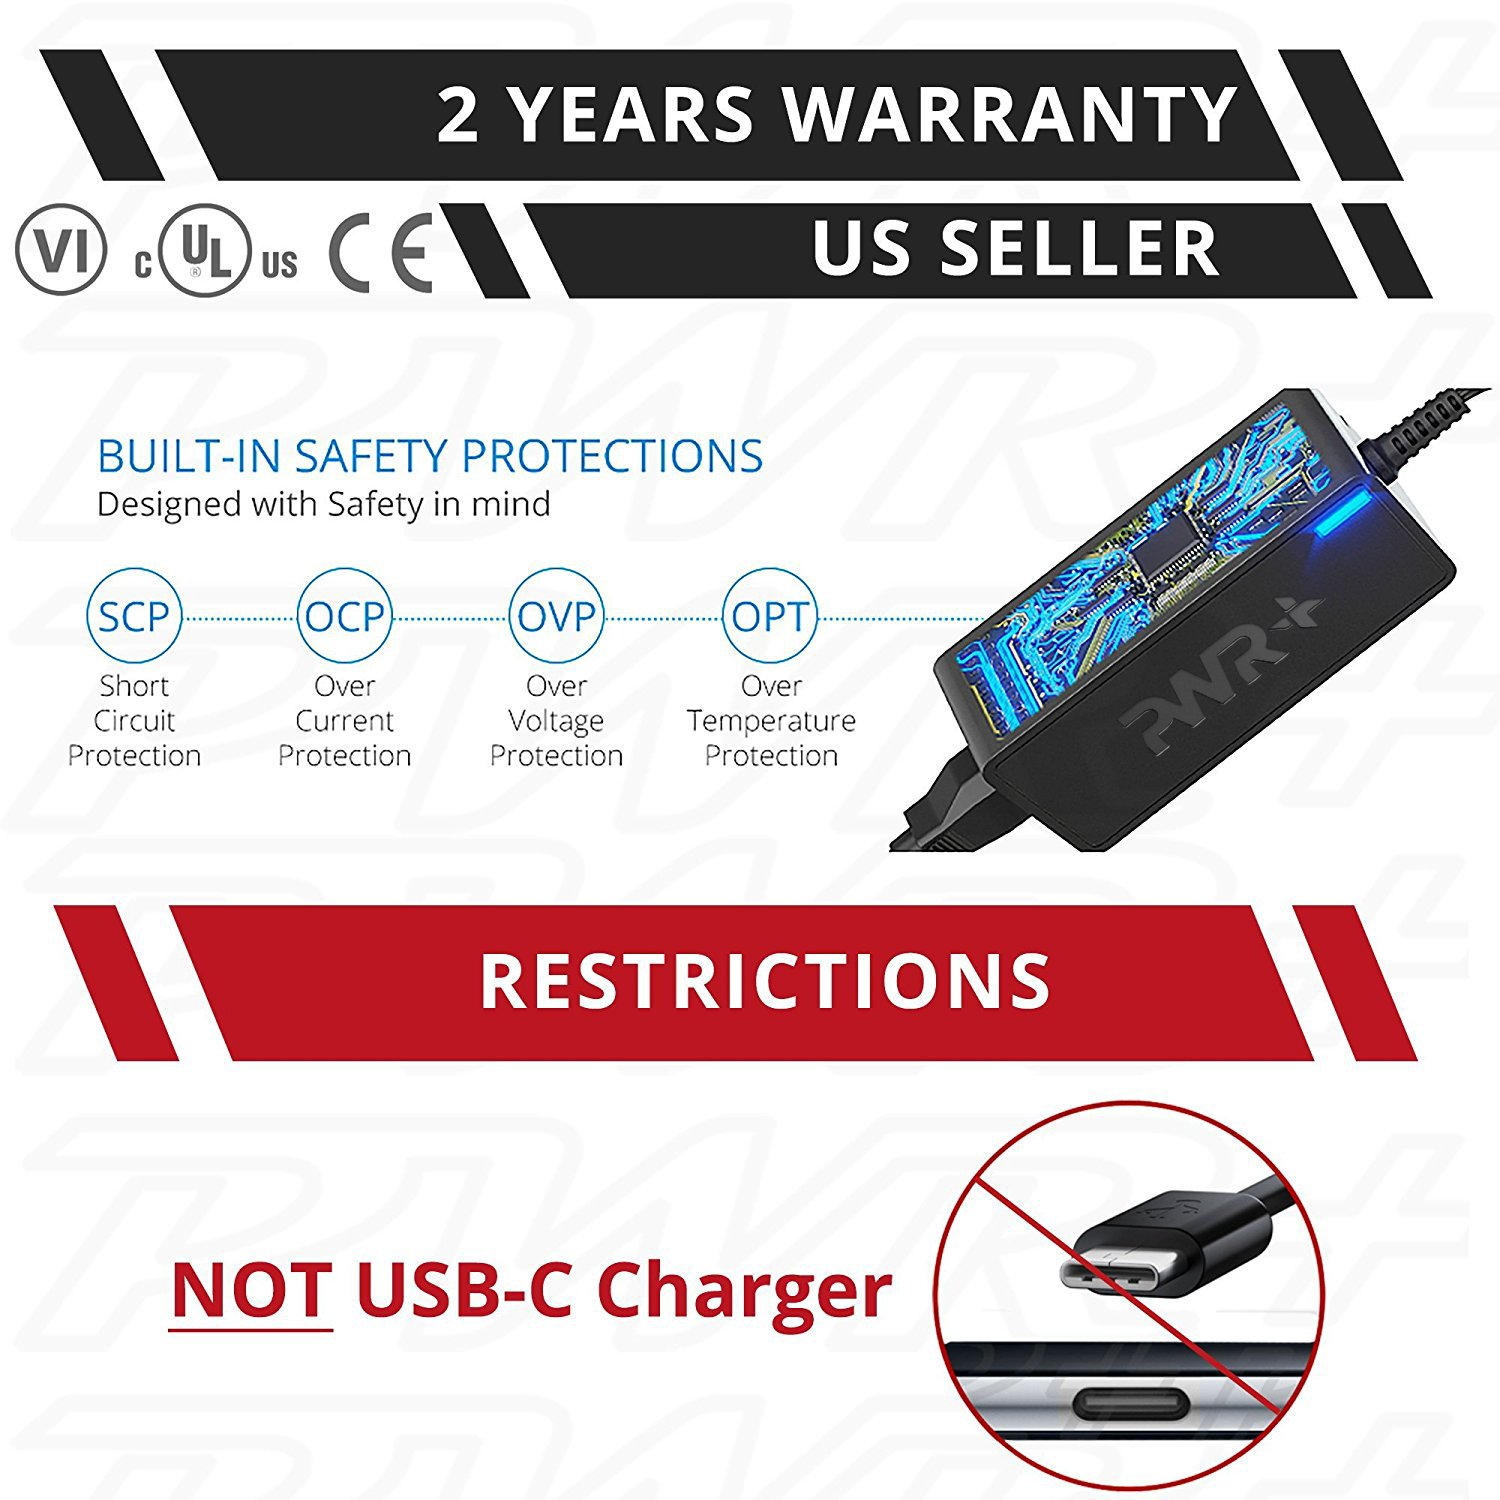 Pwr Charger for Lenovo Laptop Power Cord: UL Listed Long 12 Ft 65W 45W AC Adapter Thinkpad T440 T450 T460 T470 T570 C260 C470 ThinkCentre M53 M73 M93p All in One Desktop PC ADLX45NCC3A ADLX65NLC2A by PWR+ (Image #3)